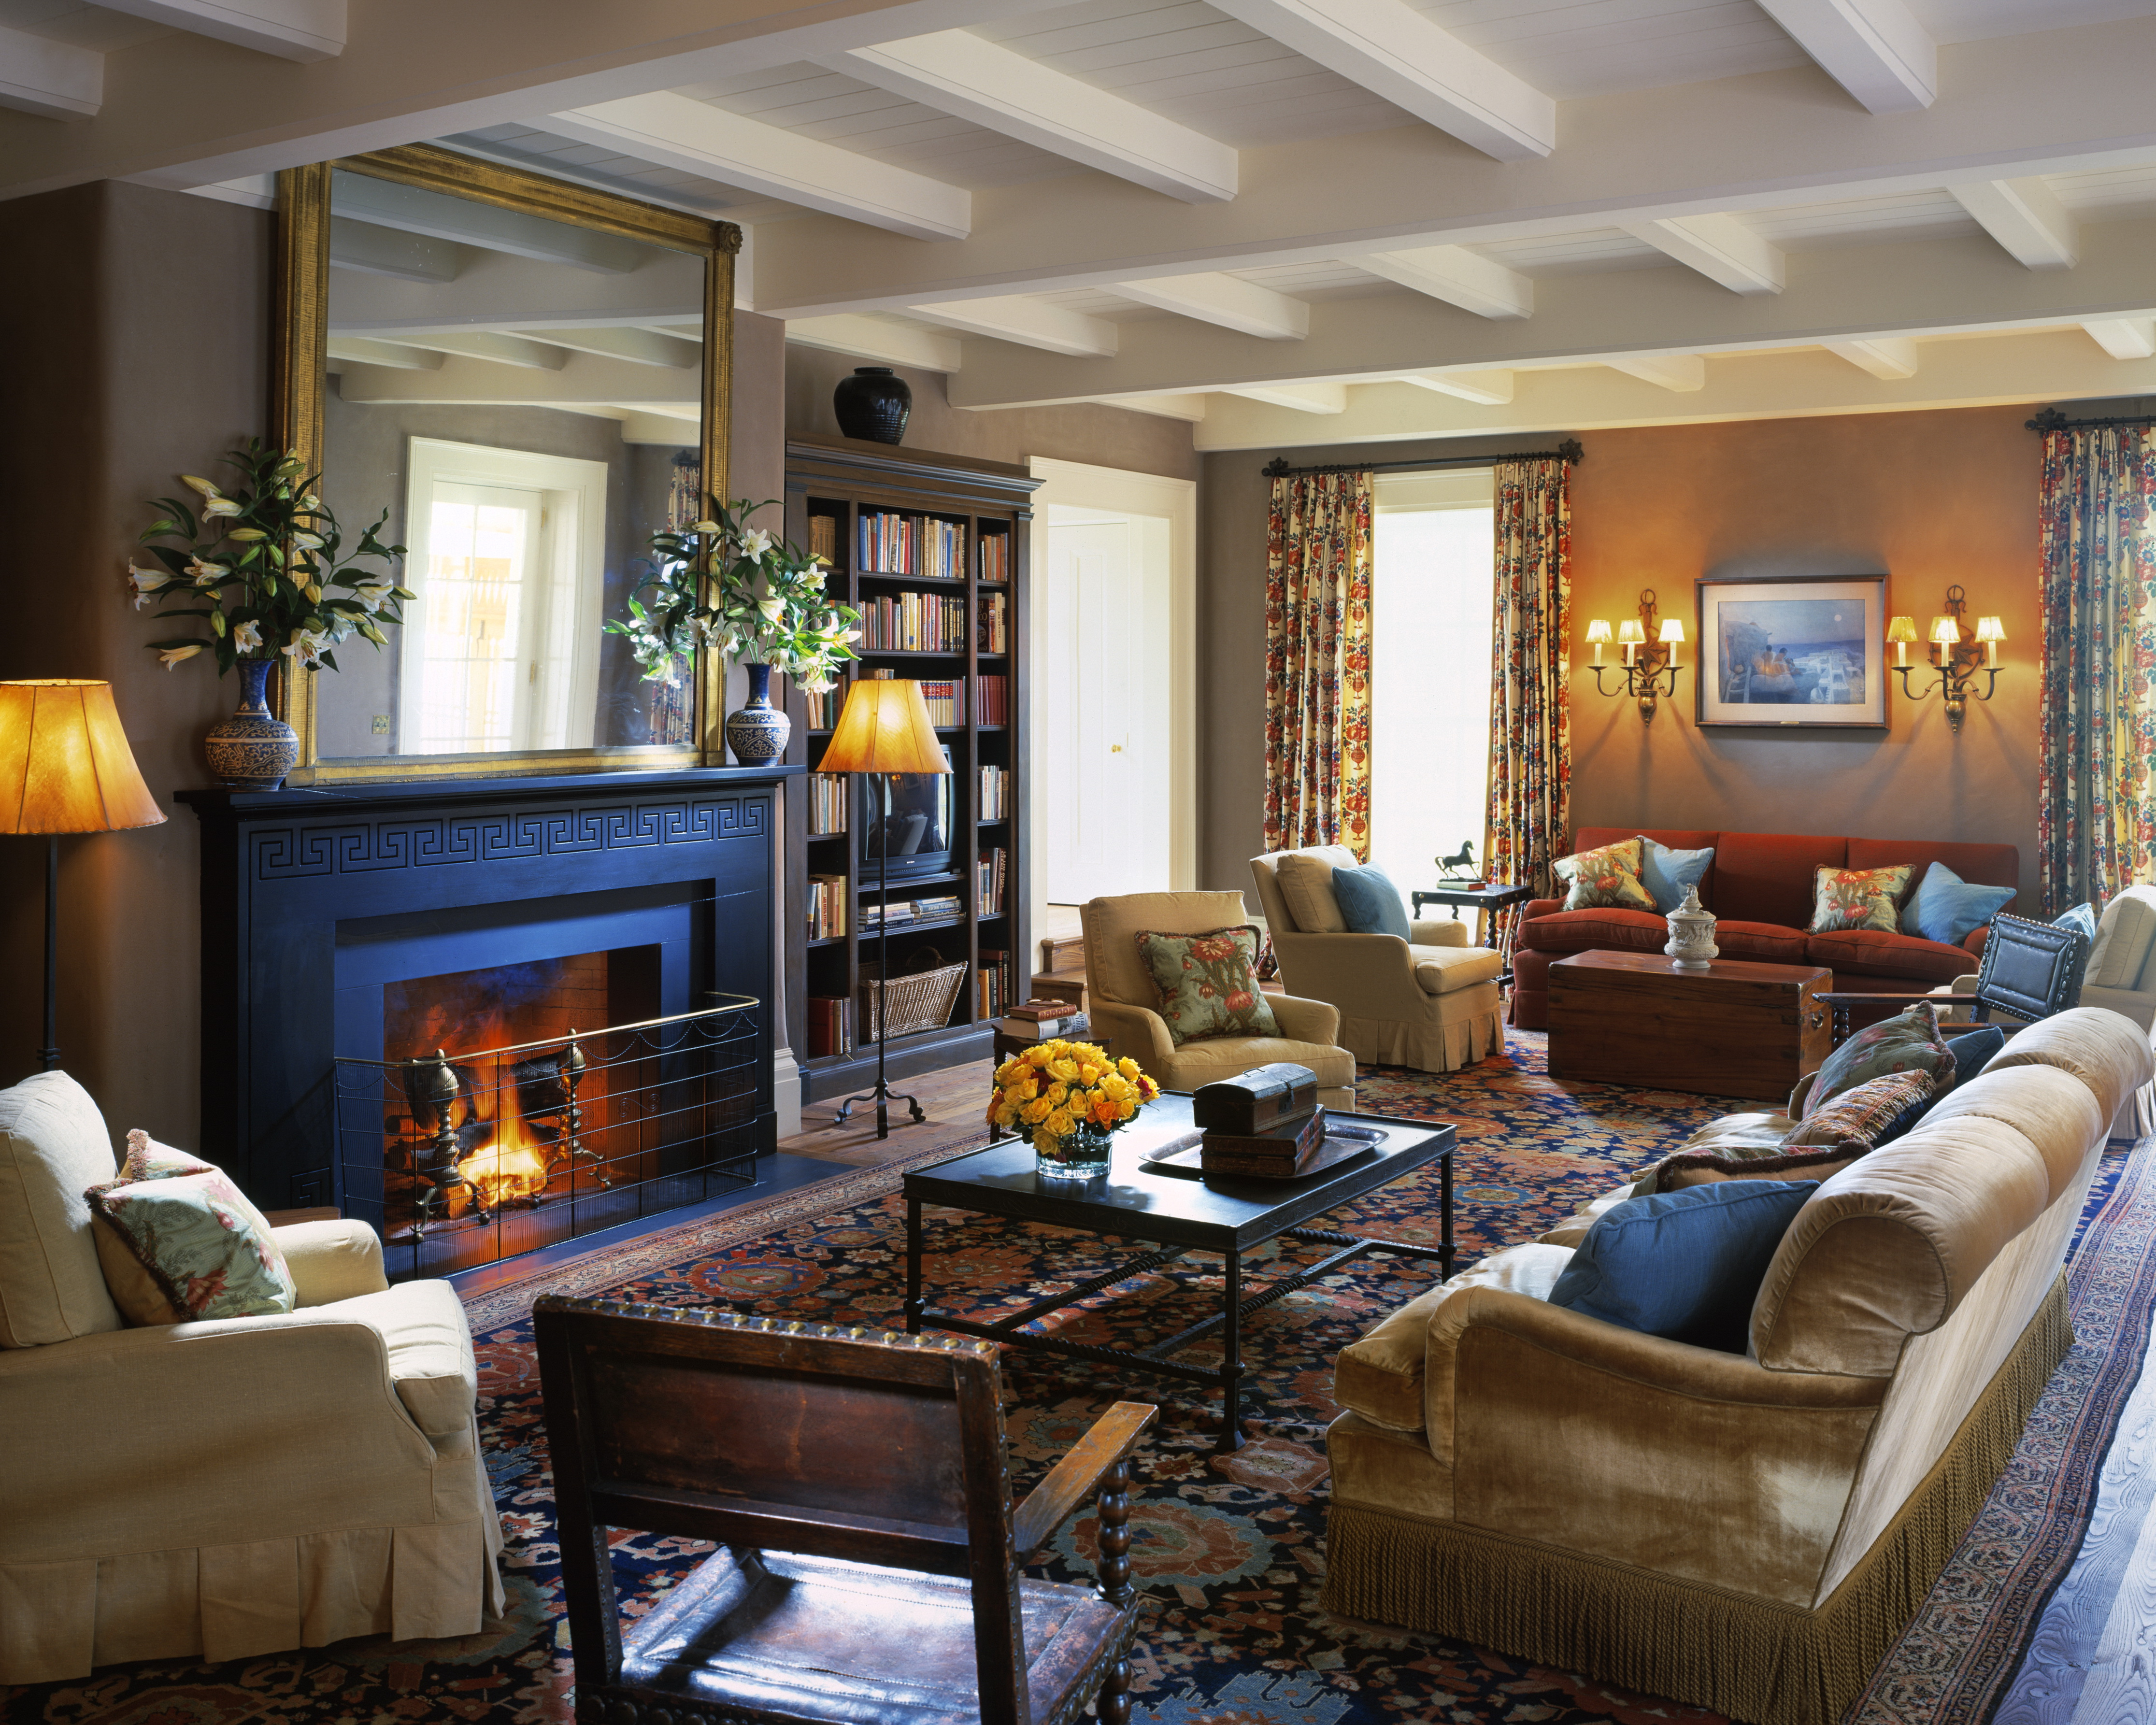 Western Living Room Ideas on a Budget   Roy Home Design on Beautiful Room Decoration  id=44835